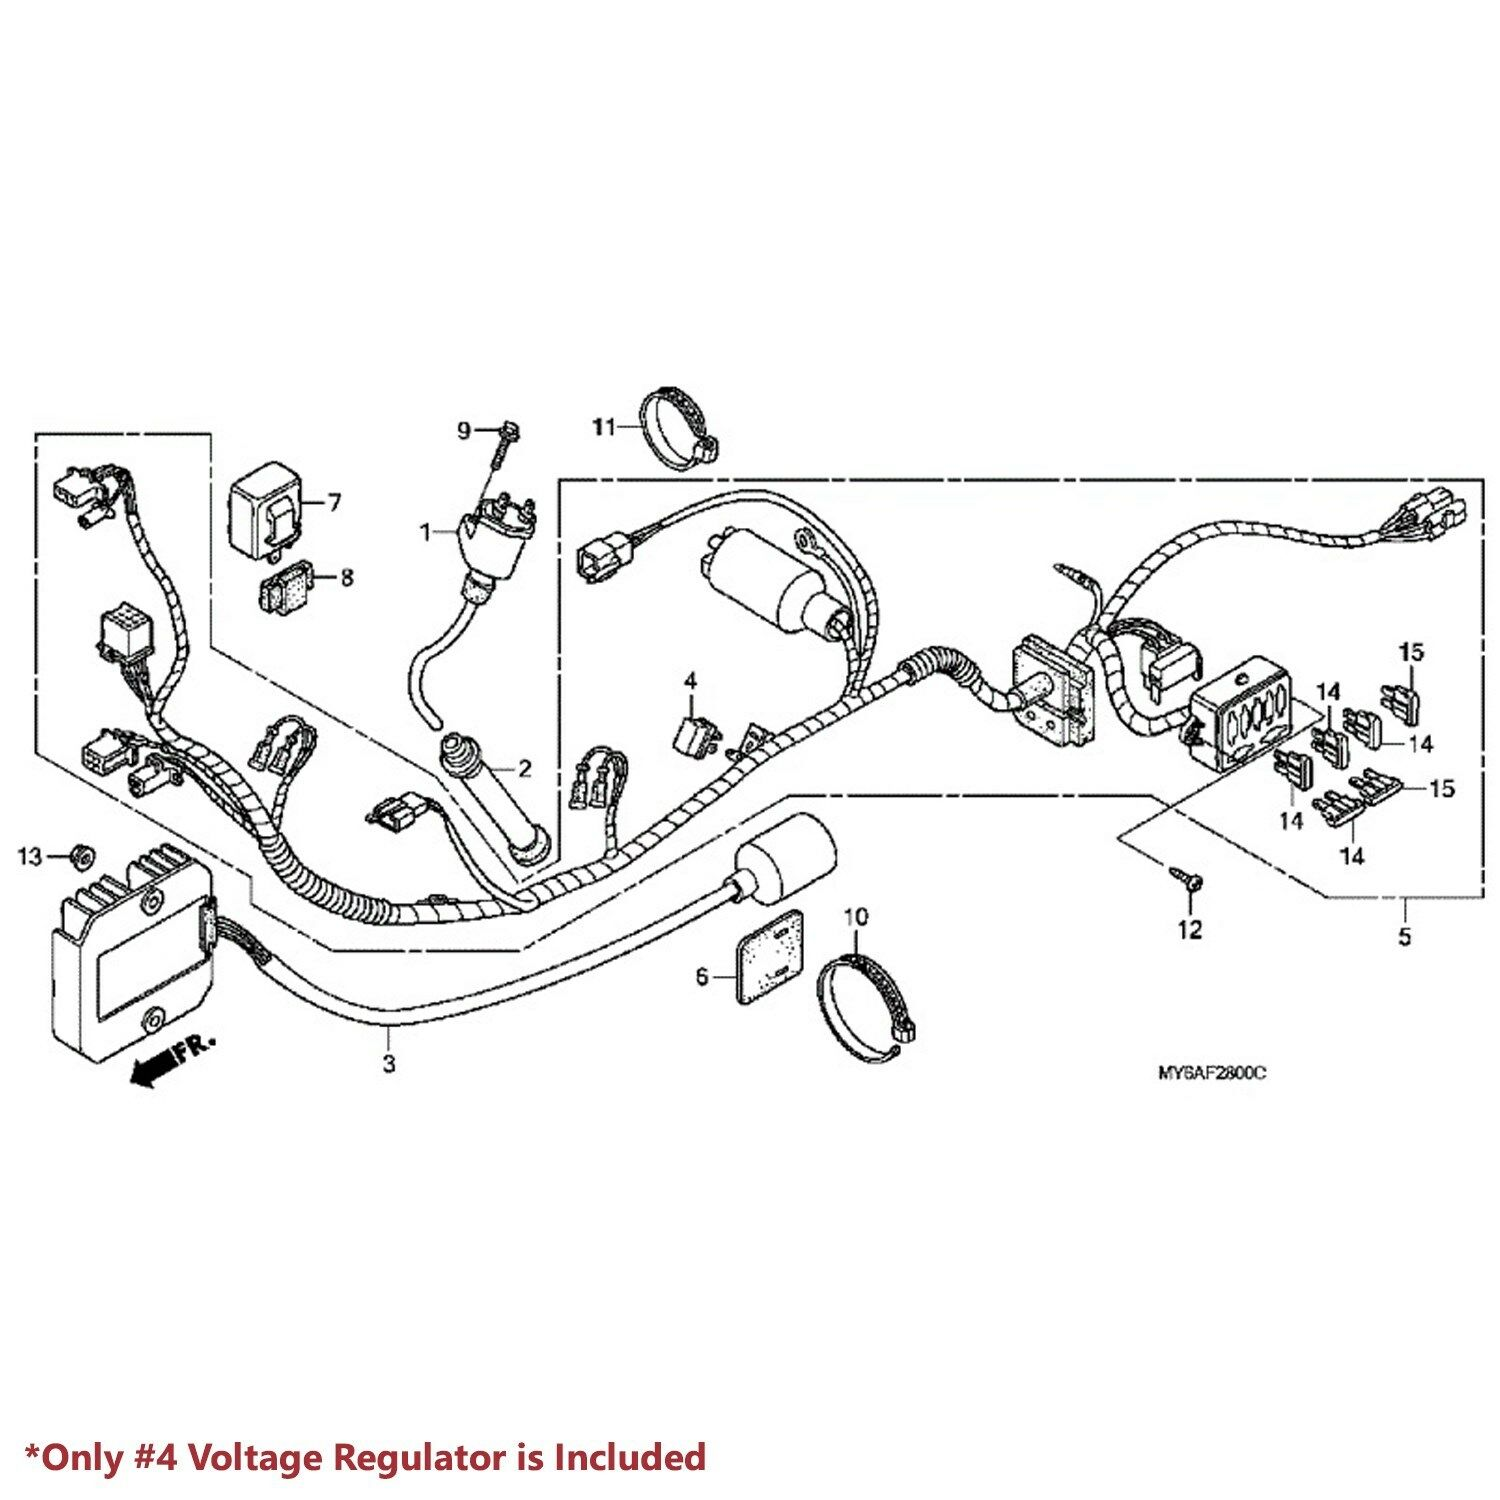 2007 honda xr650l wiring harness diagram